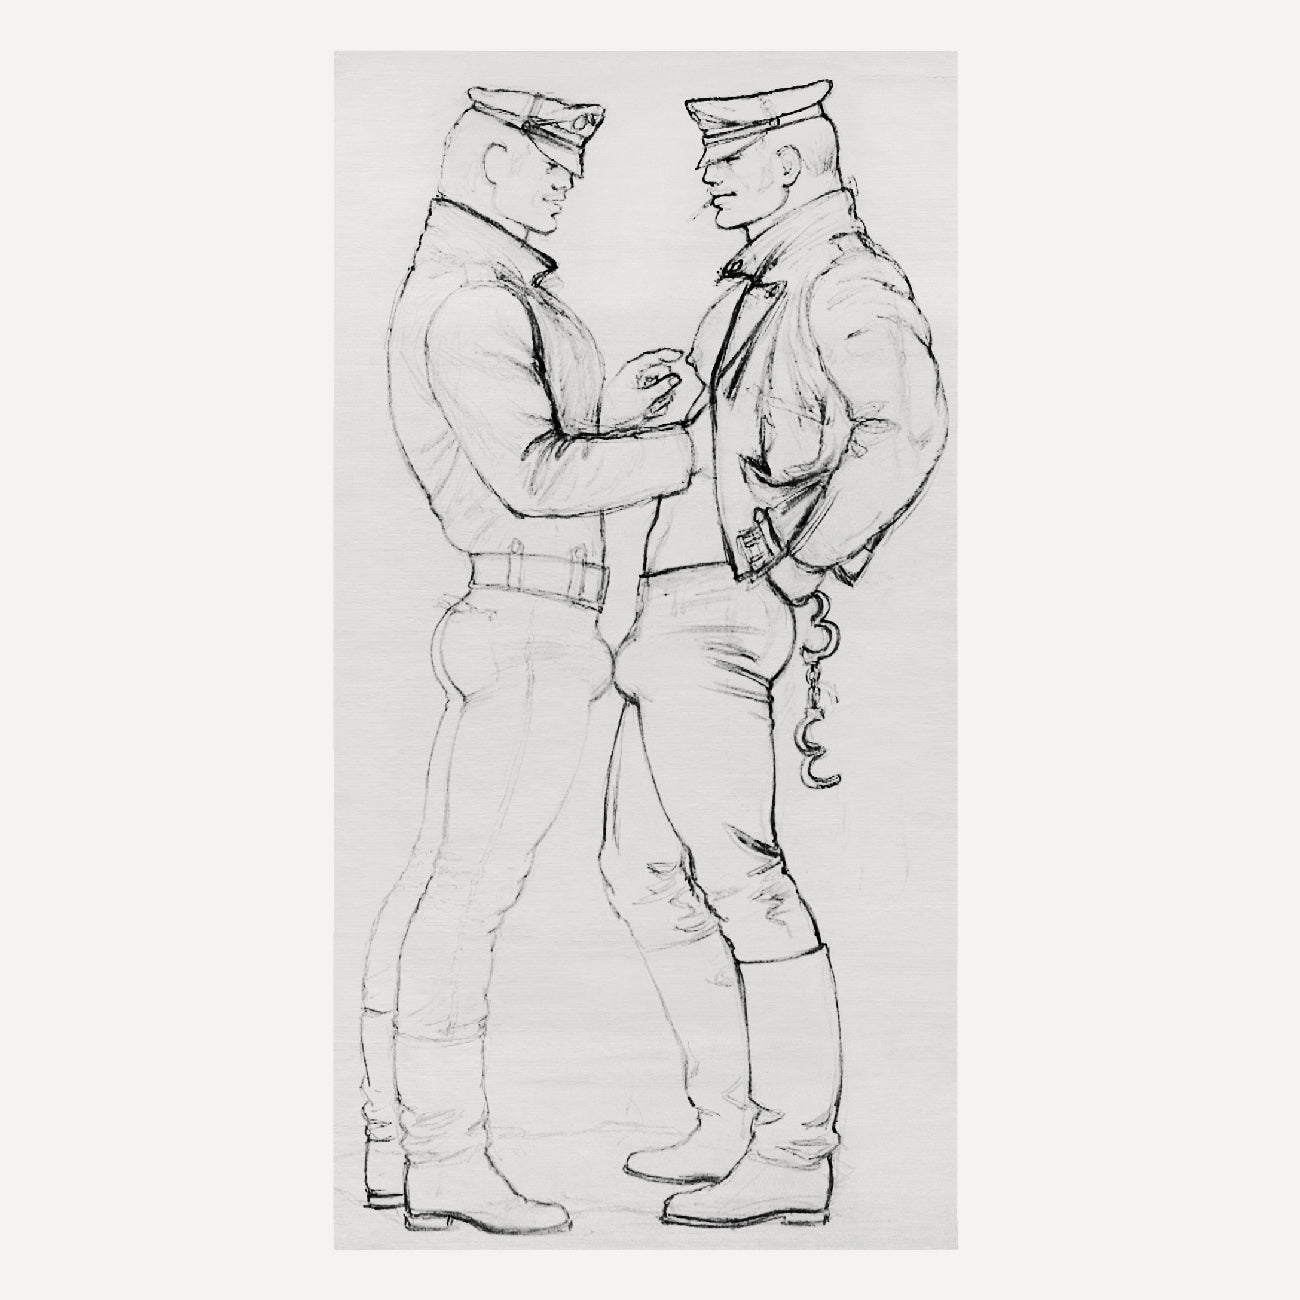 TOM OF FINLAND, UNTITLED, 1977 (0220)